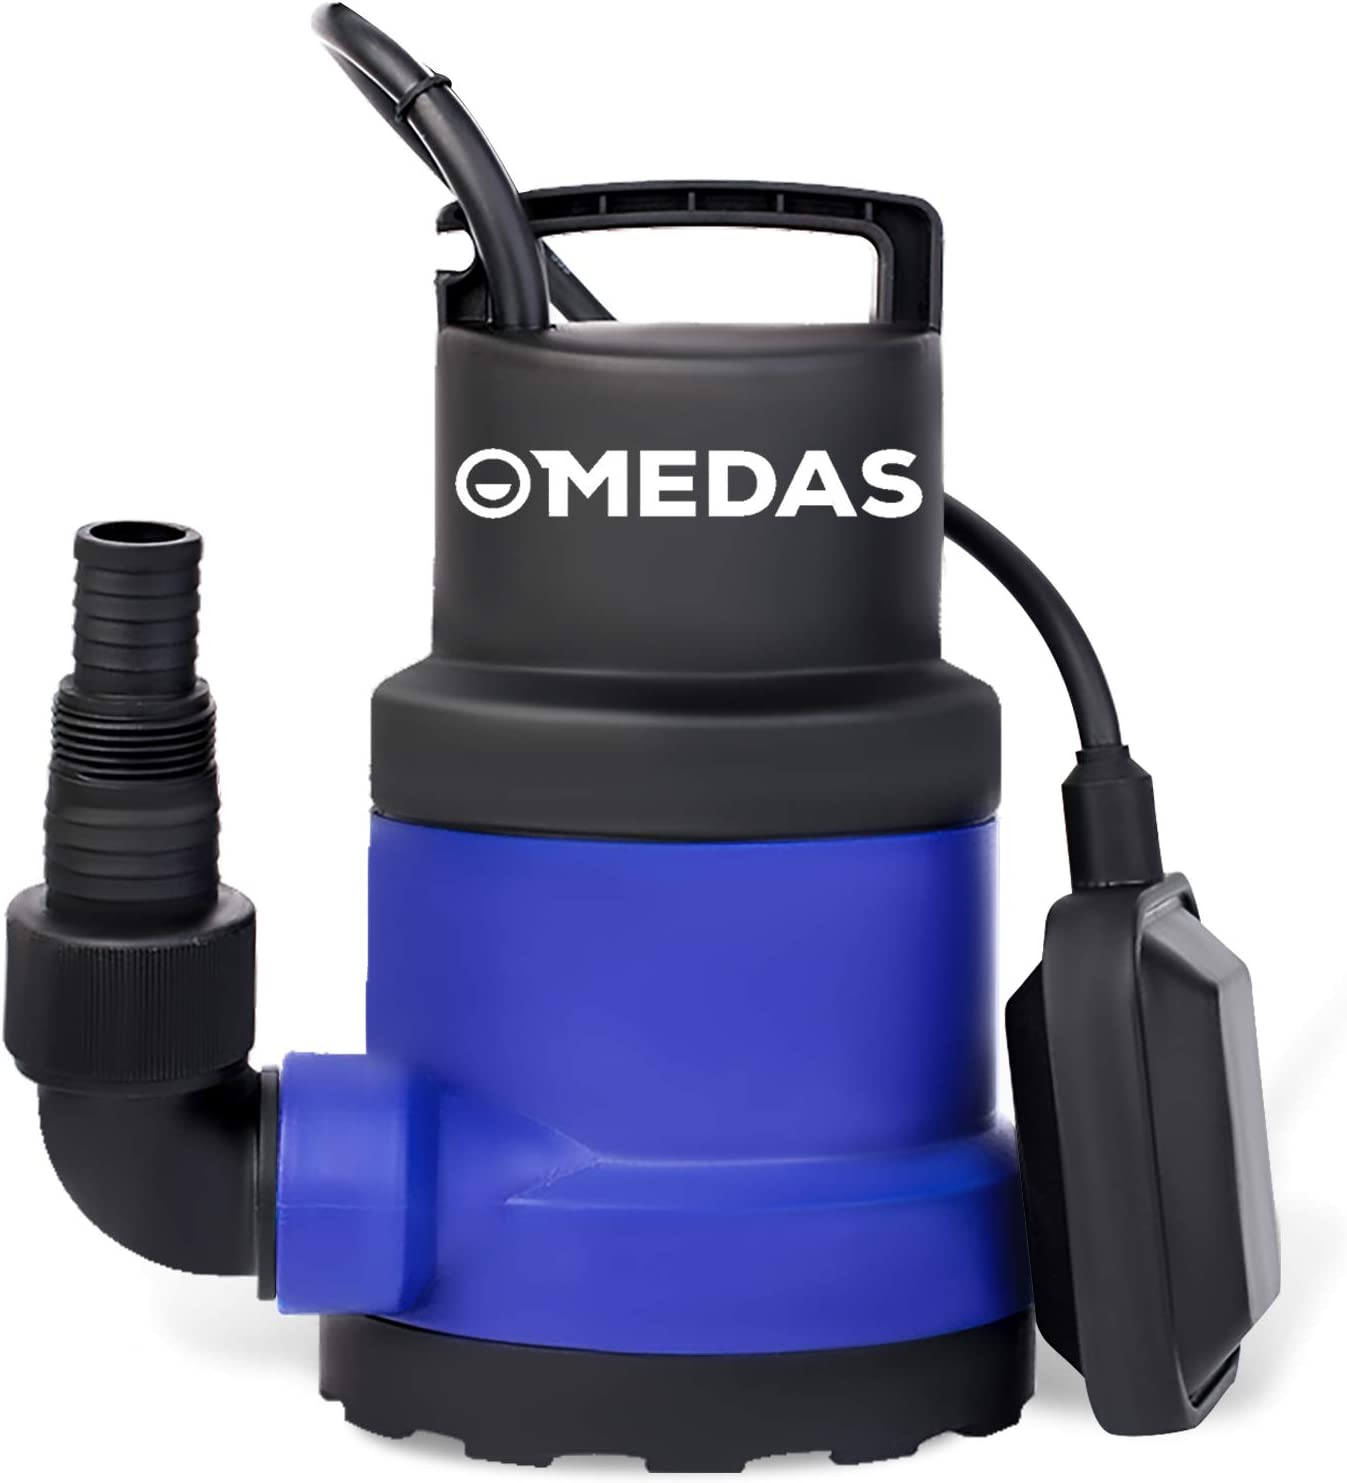 MEDAS 3/4 HP 550W 3030GPH Electric Submersible Pump Portable Sump Pumps Clean Water Pump w/Float Switch for Pool and Pond Draining Garden Pool in Clean Water